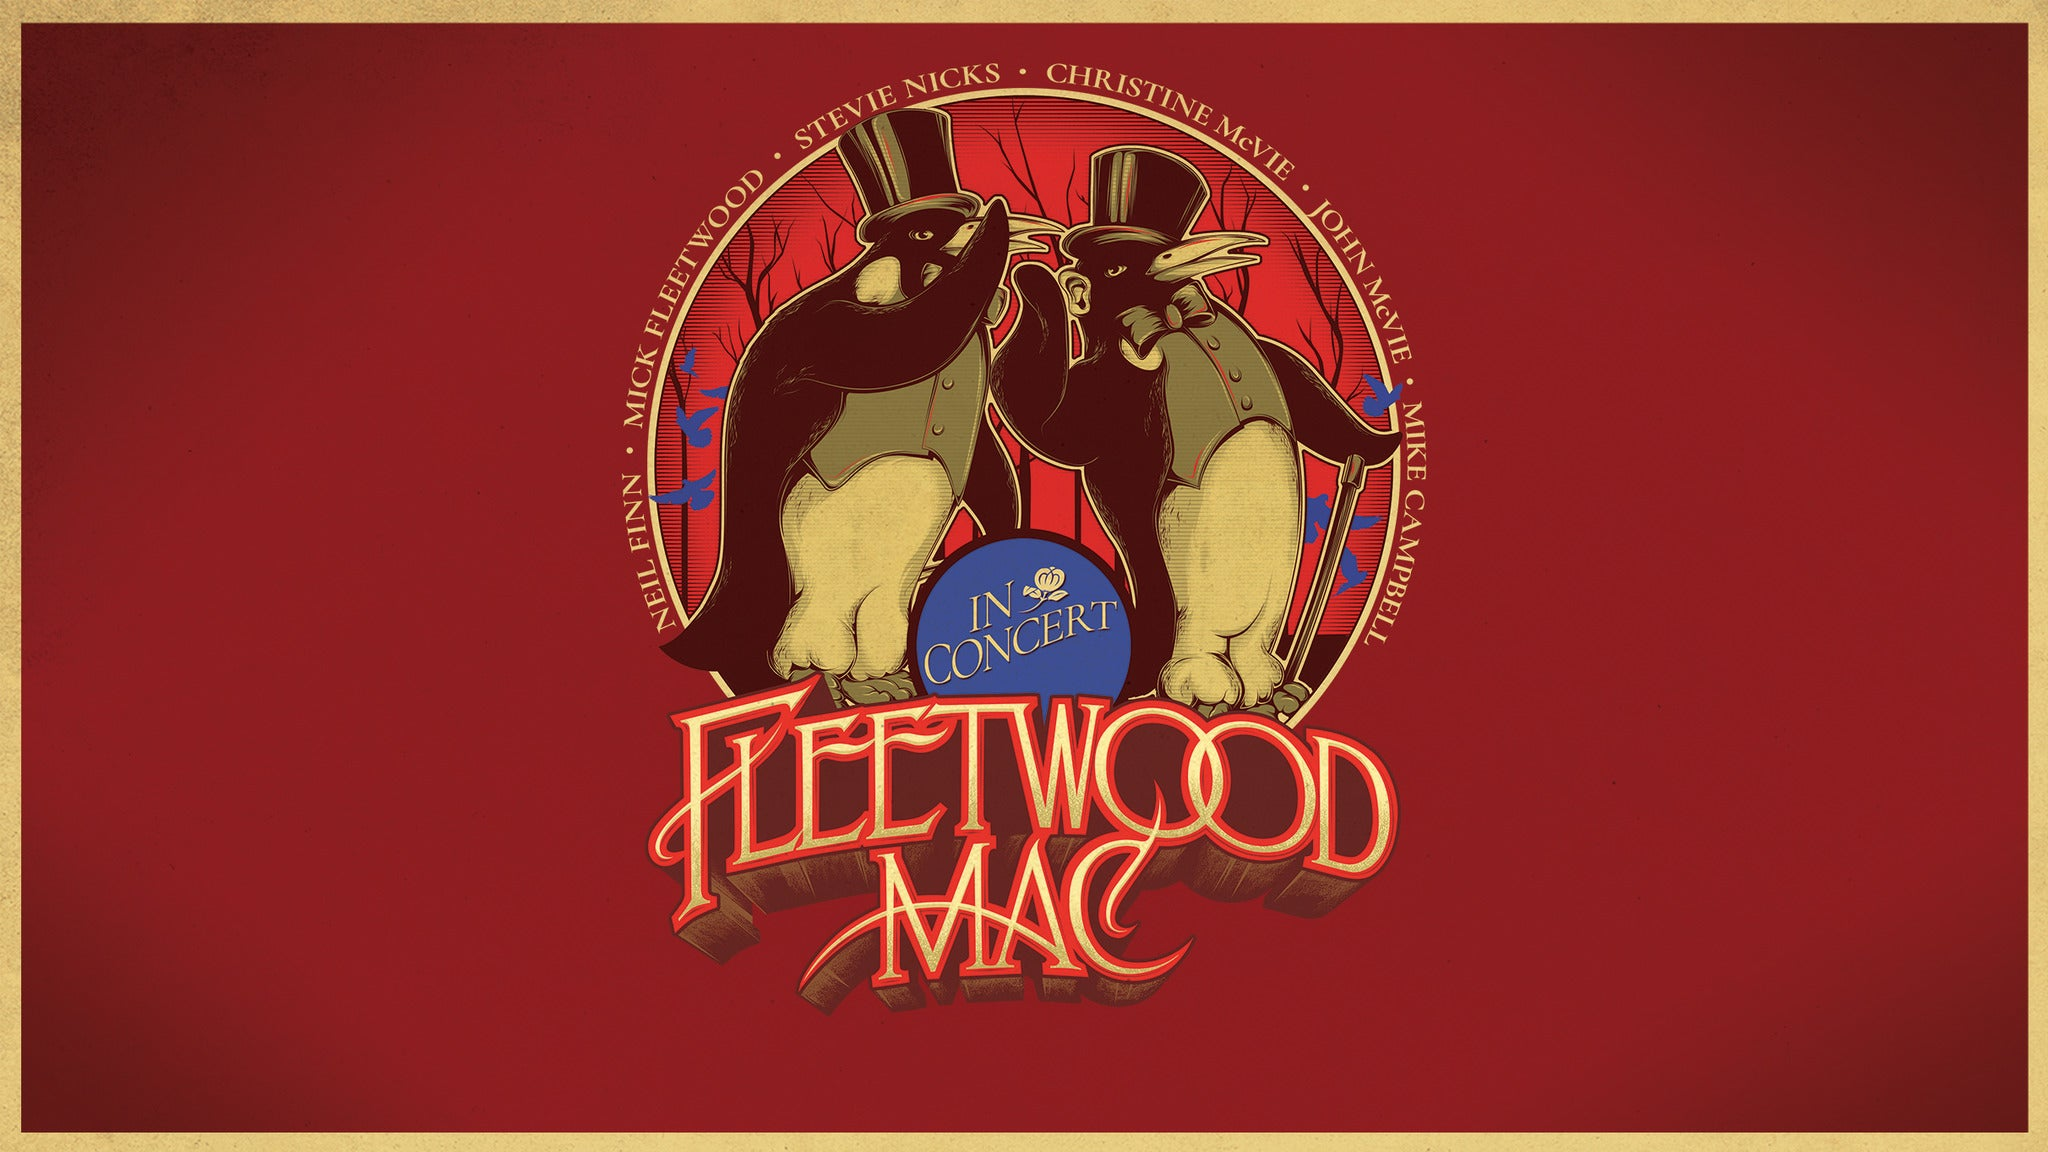 An Evening With Fleetwood Mac at The Forum